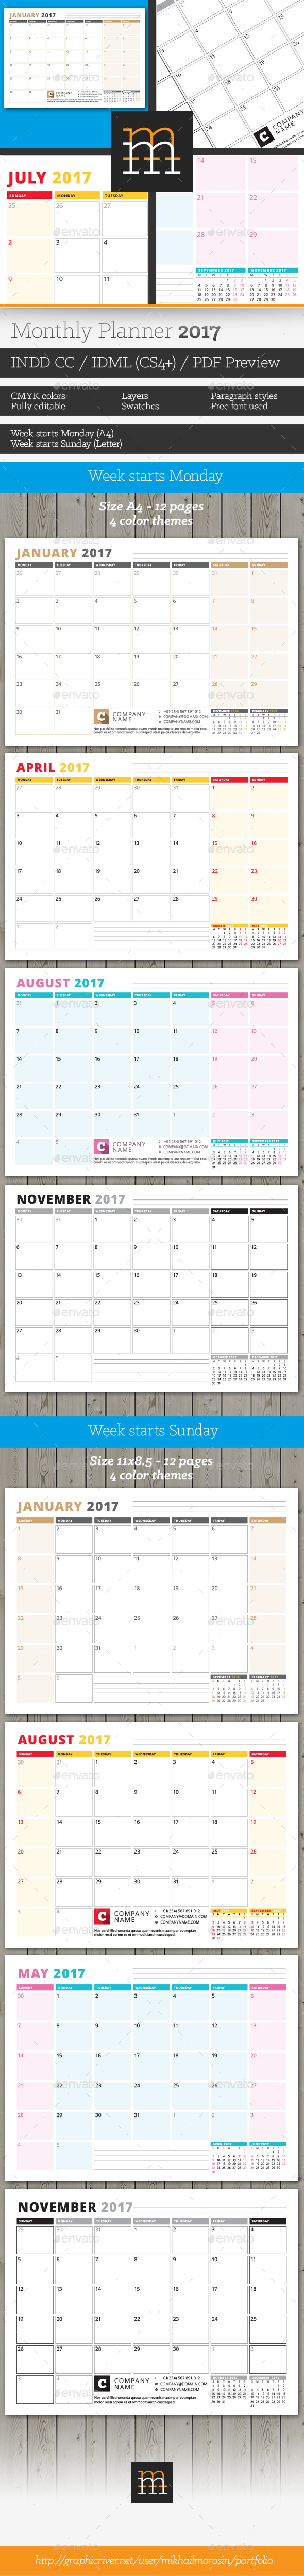 Monthly Planner 2017 - Calendars Stationery